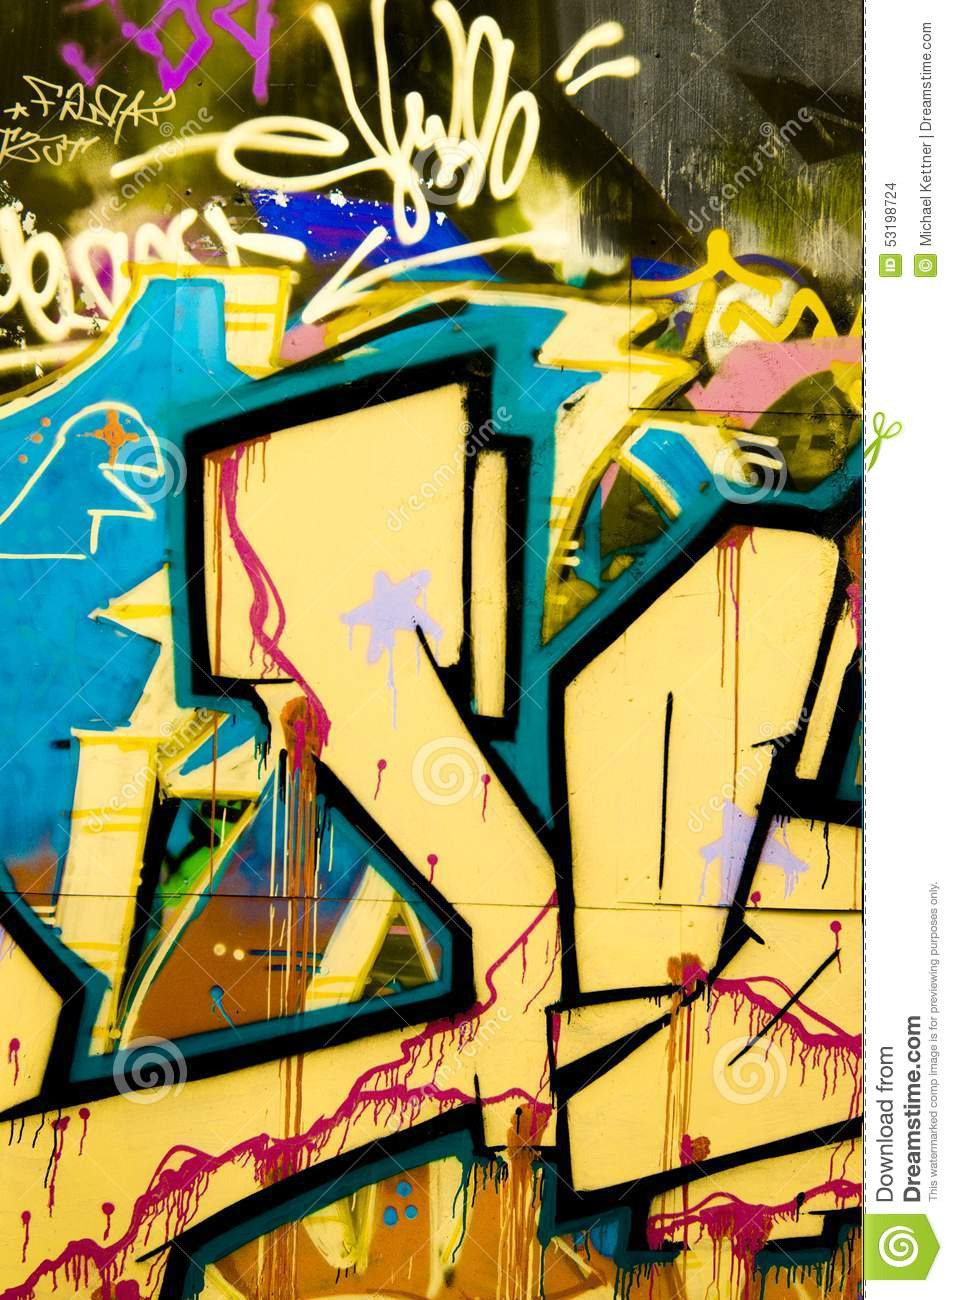 Colorful Graffiti With Heaven And Clouds Stock Photo - Image of ...